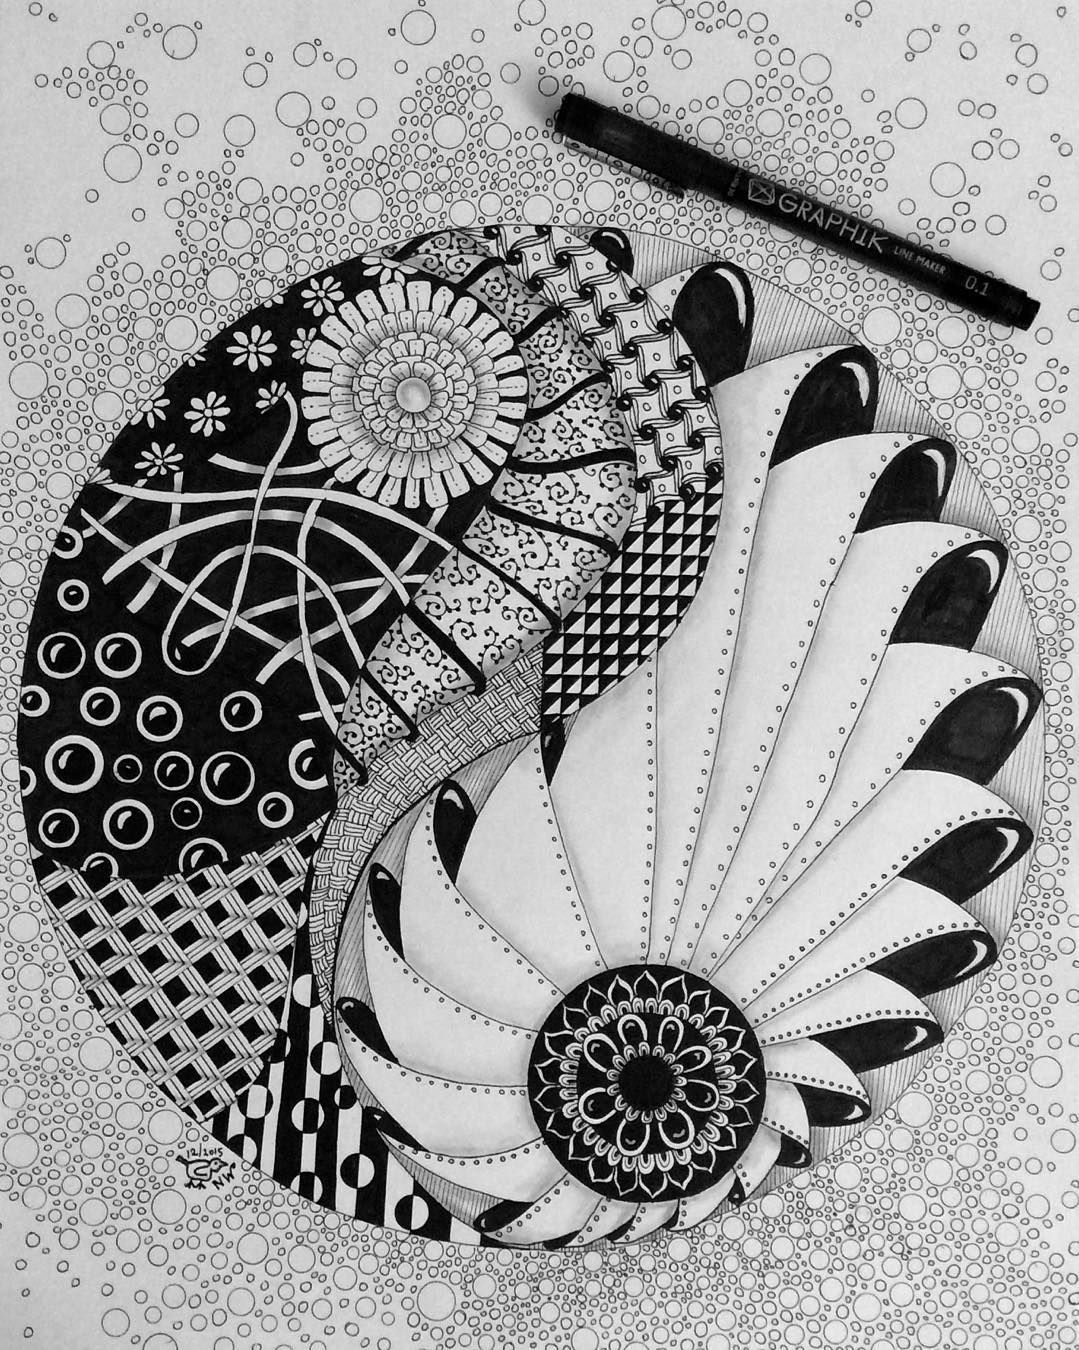 Nicole On Instagram A Big One This Time Yin Yang Zentangle Zentangleart Zendoodle Zendoodleart Zendala Mandala Penart Penandink Draw Drawing Do Zentangle Zeichnungen Zentangle Muster Mandala Kunst